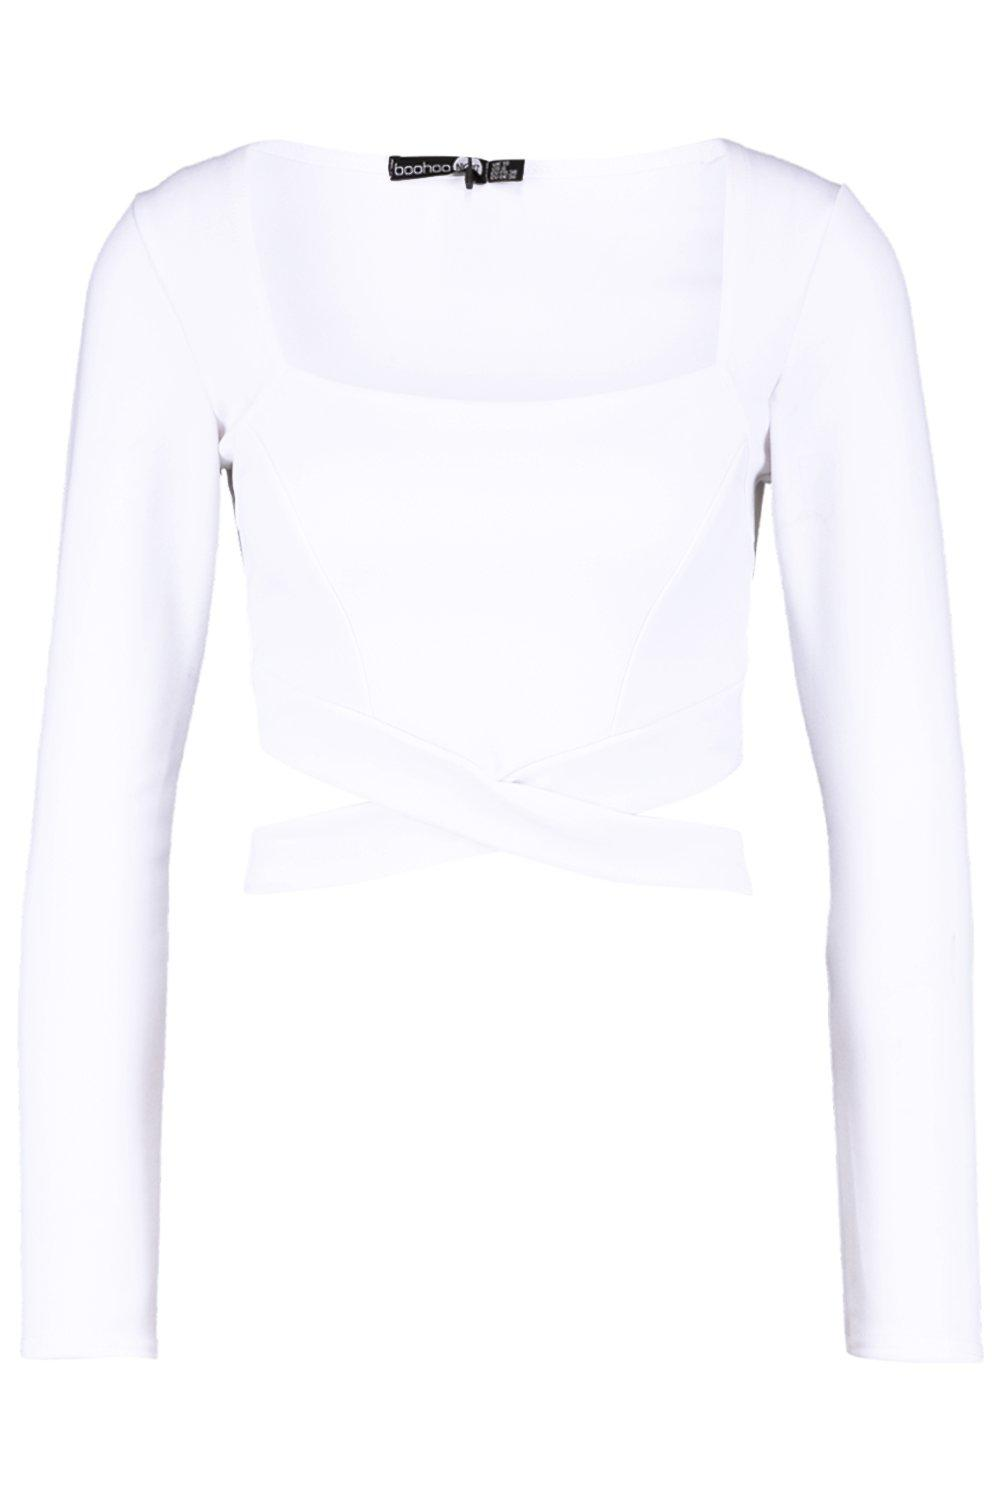 Sleeve Out Cut white Square Long Neck Crop qcTSWA6E1